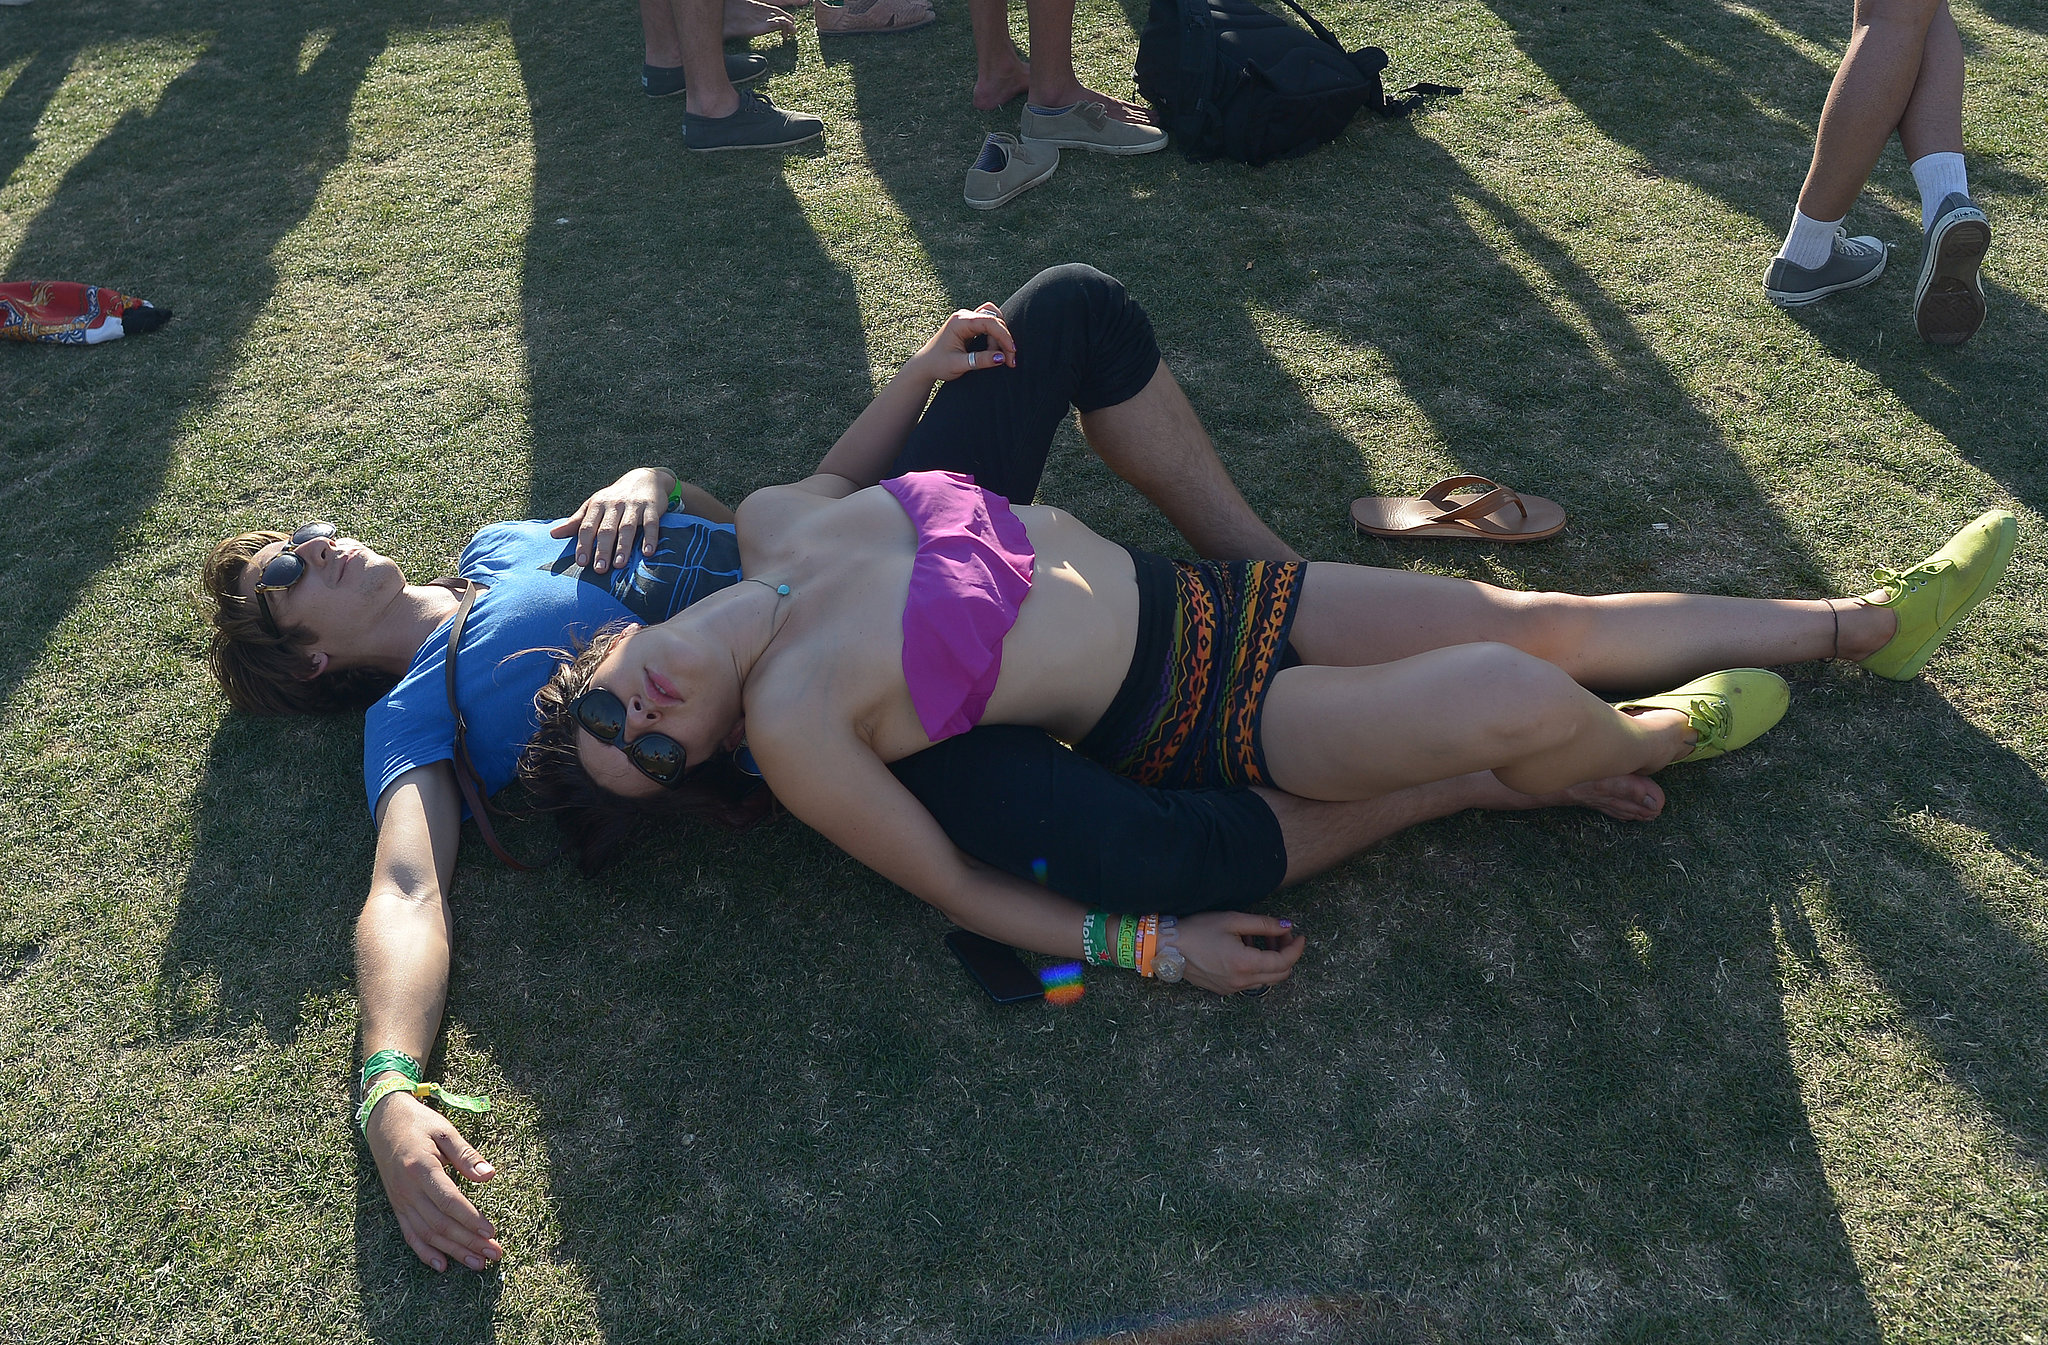 This Coachella pair relaxed together on the grass.